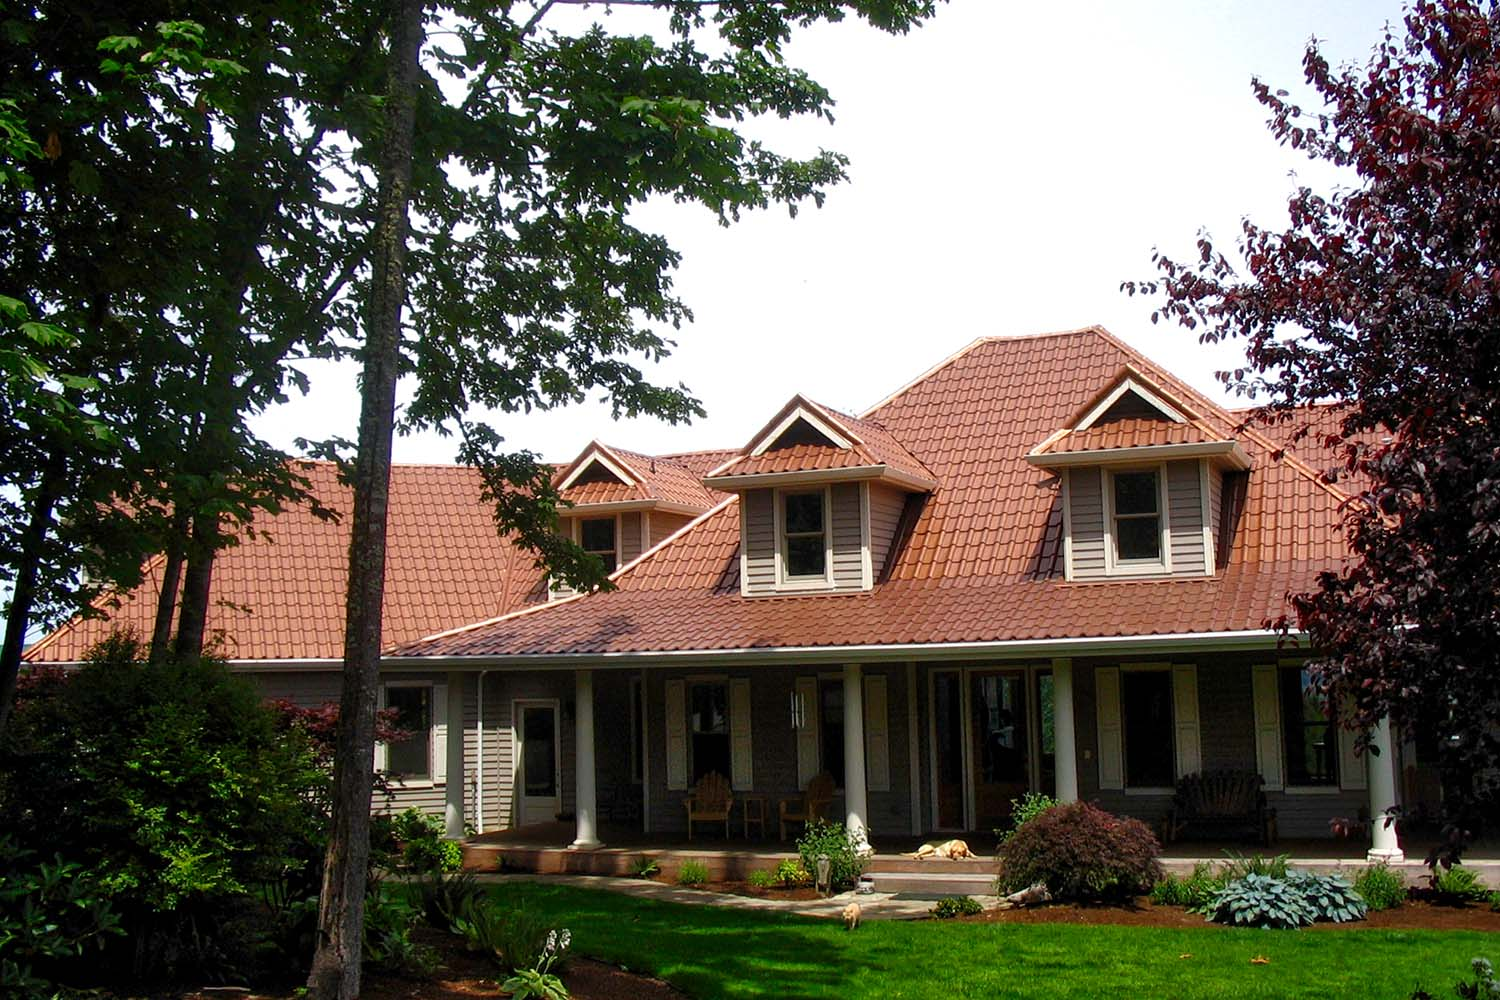 aged copper metal mediterranean tile roof dutch gable dormers